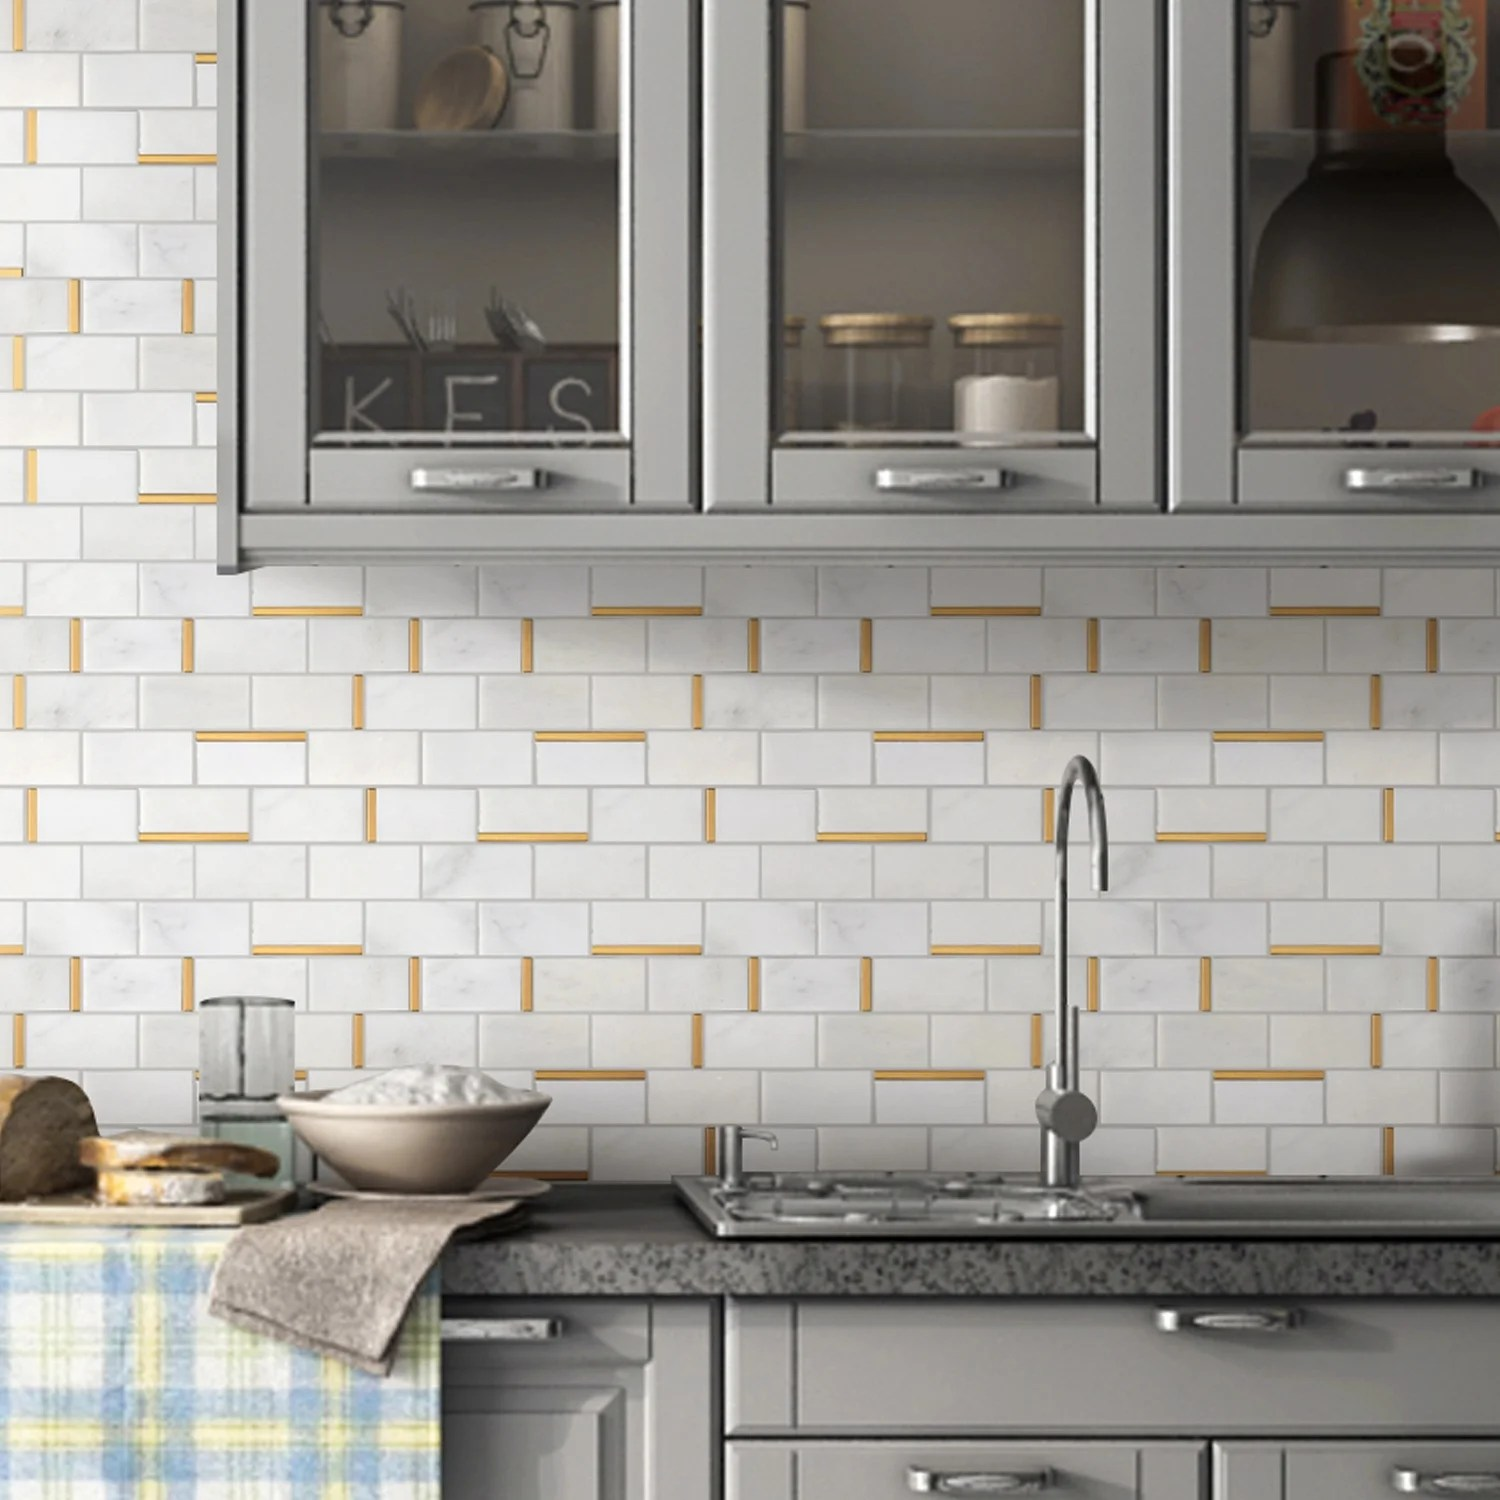 tilegen natural bianco 2 x 4 subway metal and marble mosaic tile in gold white wall tile 10 sheets 9 7sqft